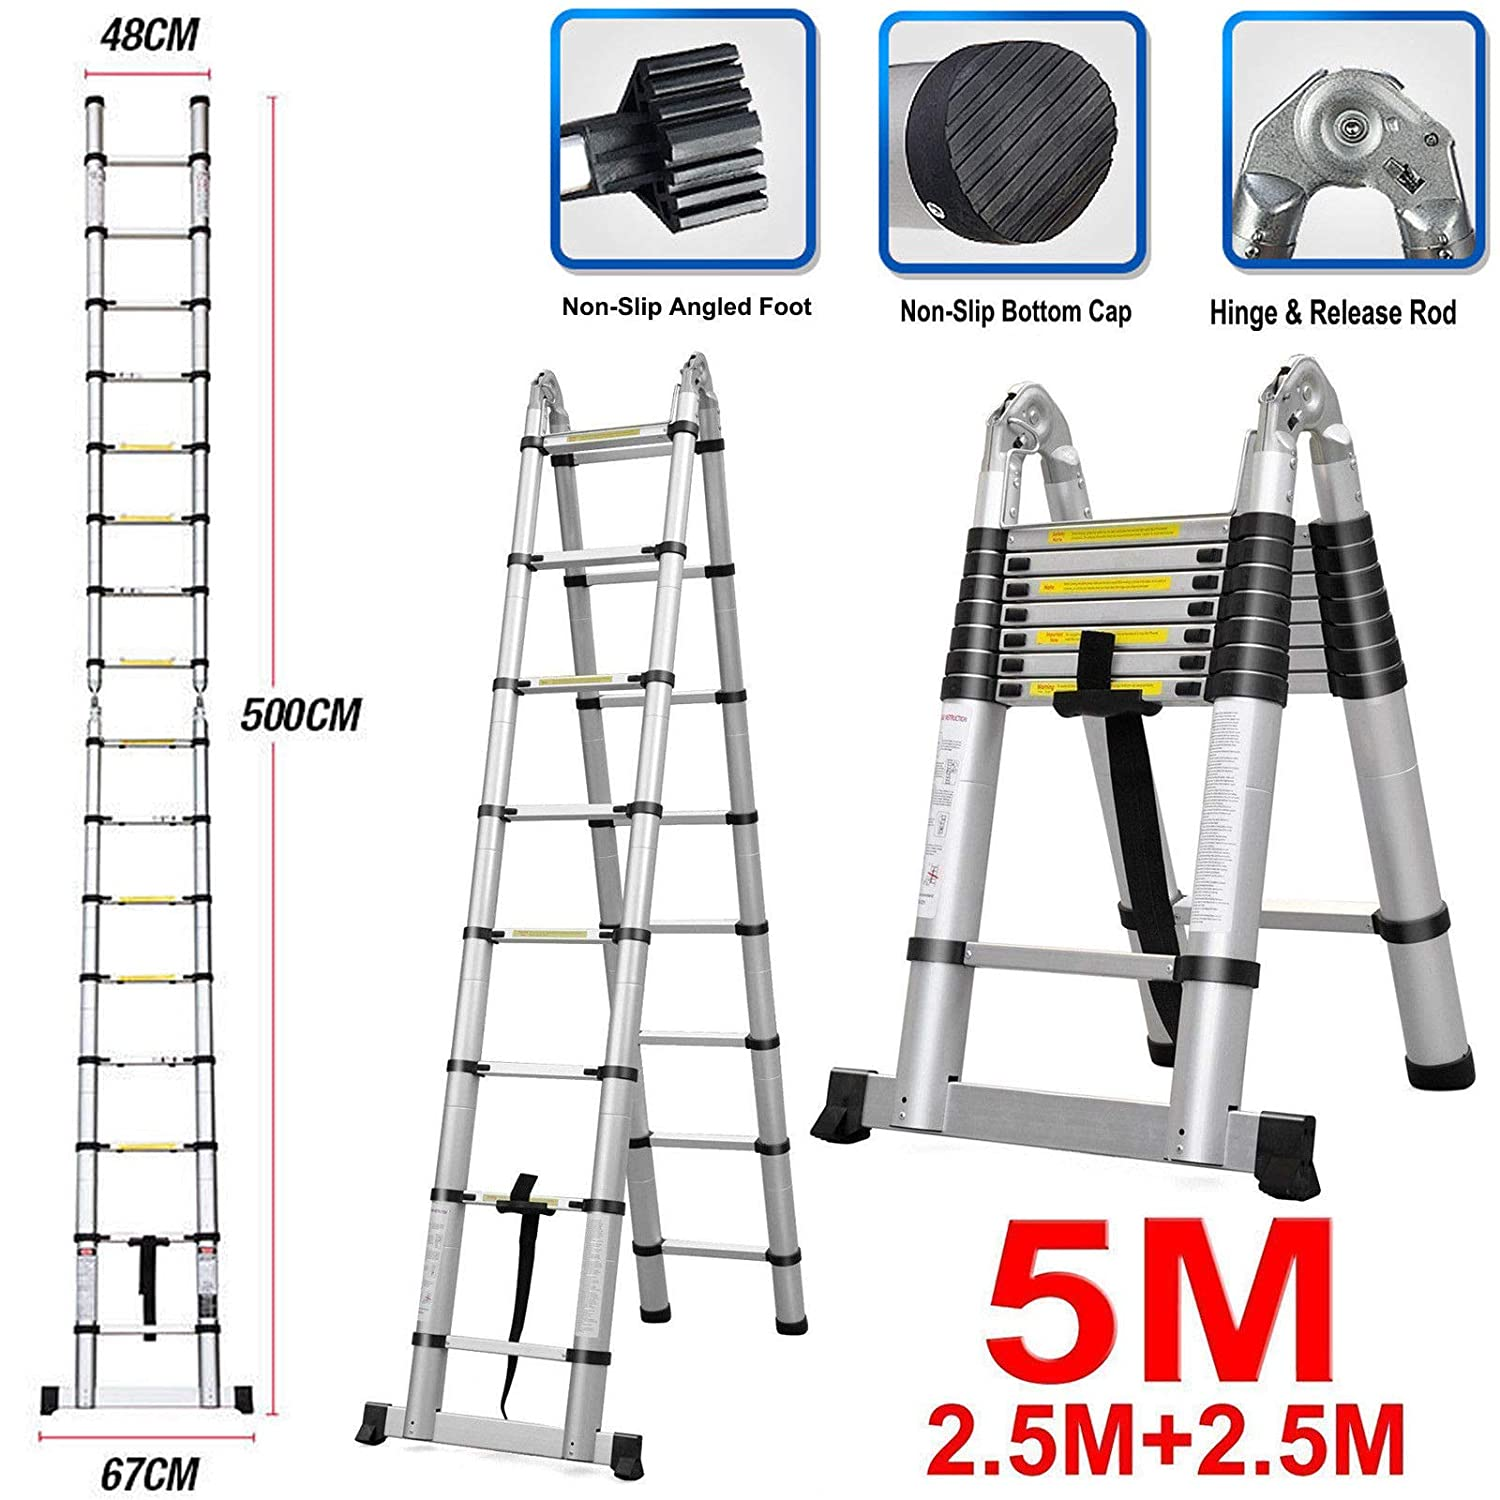 Telescoping Ladder 5m 16.5ft Multi-Function Ladders 16 Steps Folding 2.5M+2.5M Expandable Collapsible Easy to Carry Tall for DIY Builders Outdoor Indoor 440lb Load Capacity extending ladders 5m